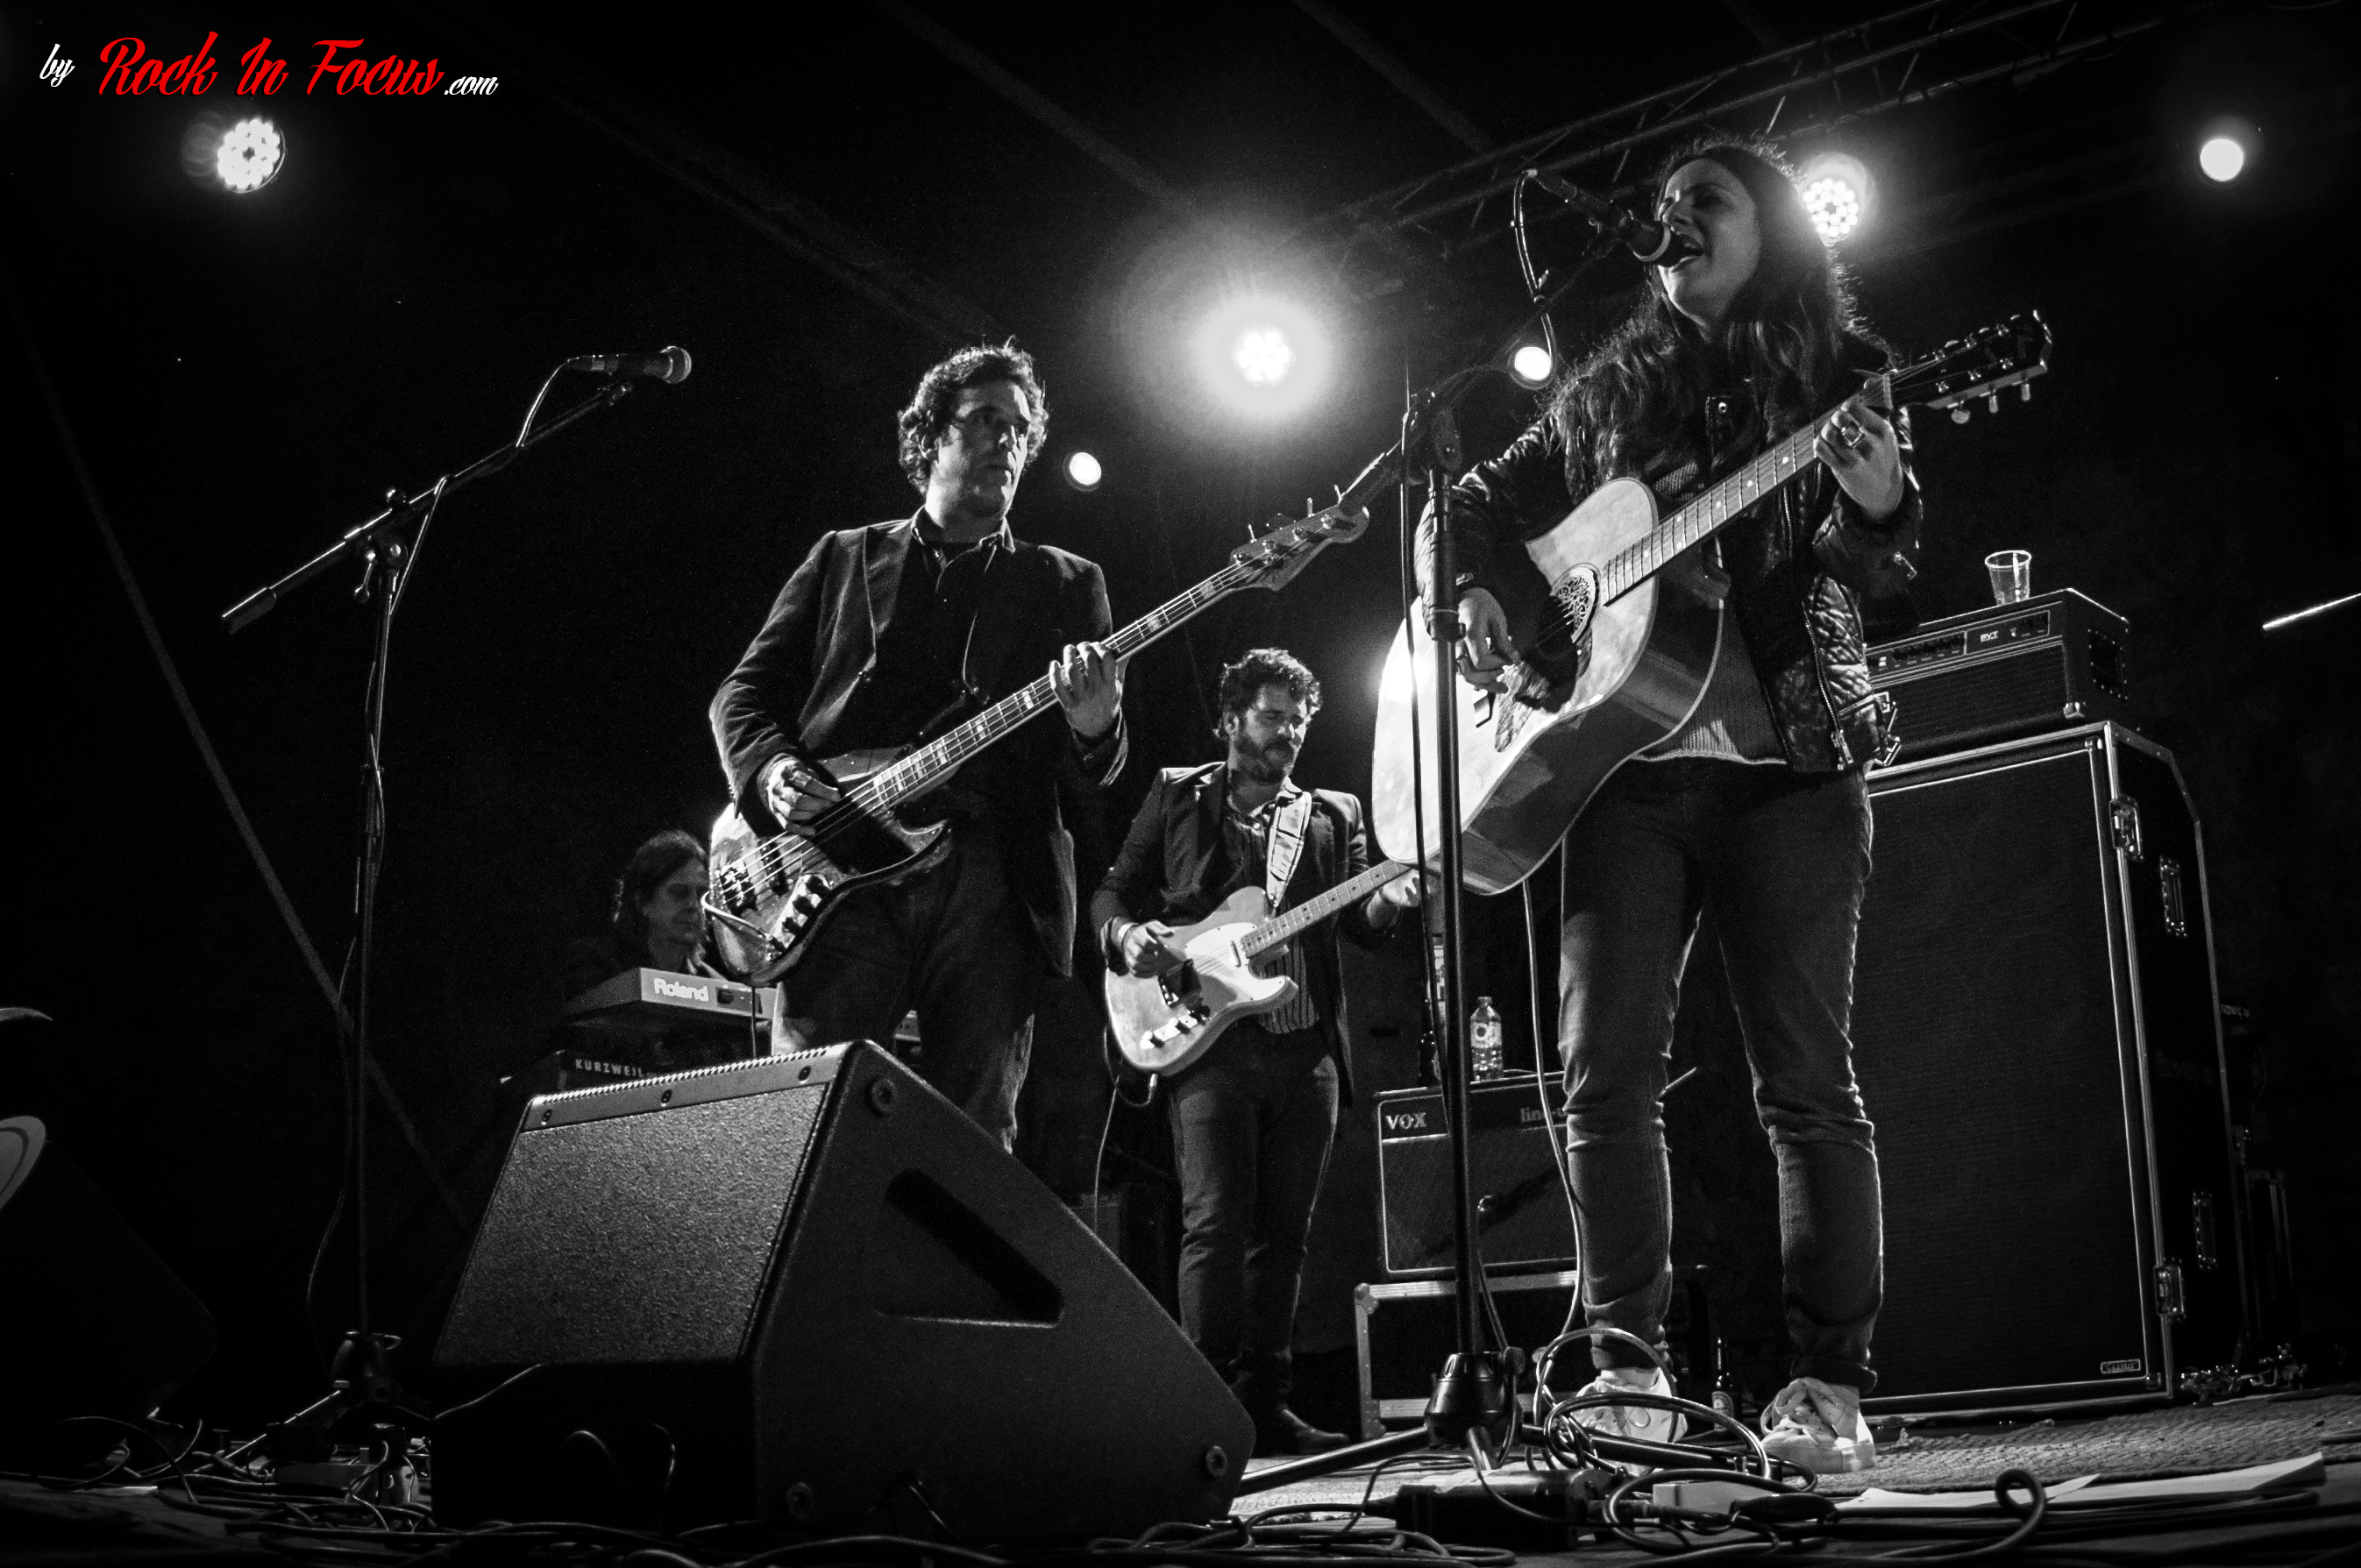 20160701---EL-ULTIMO-VALS---THE-FAKEBAND---26